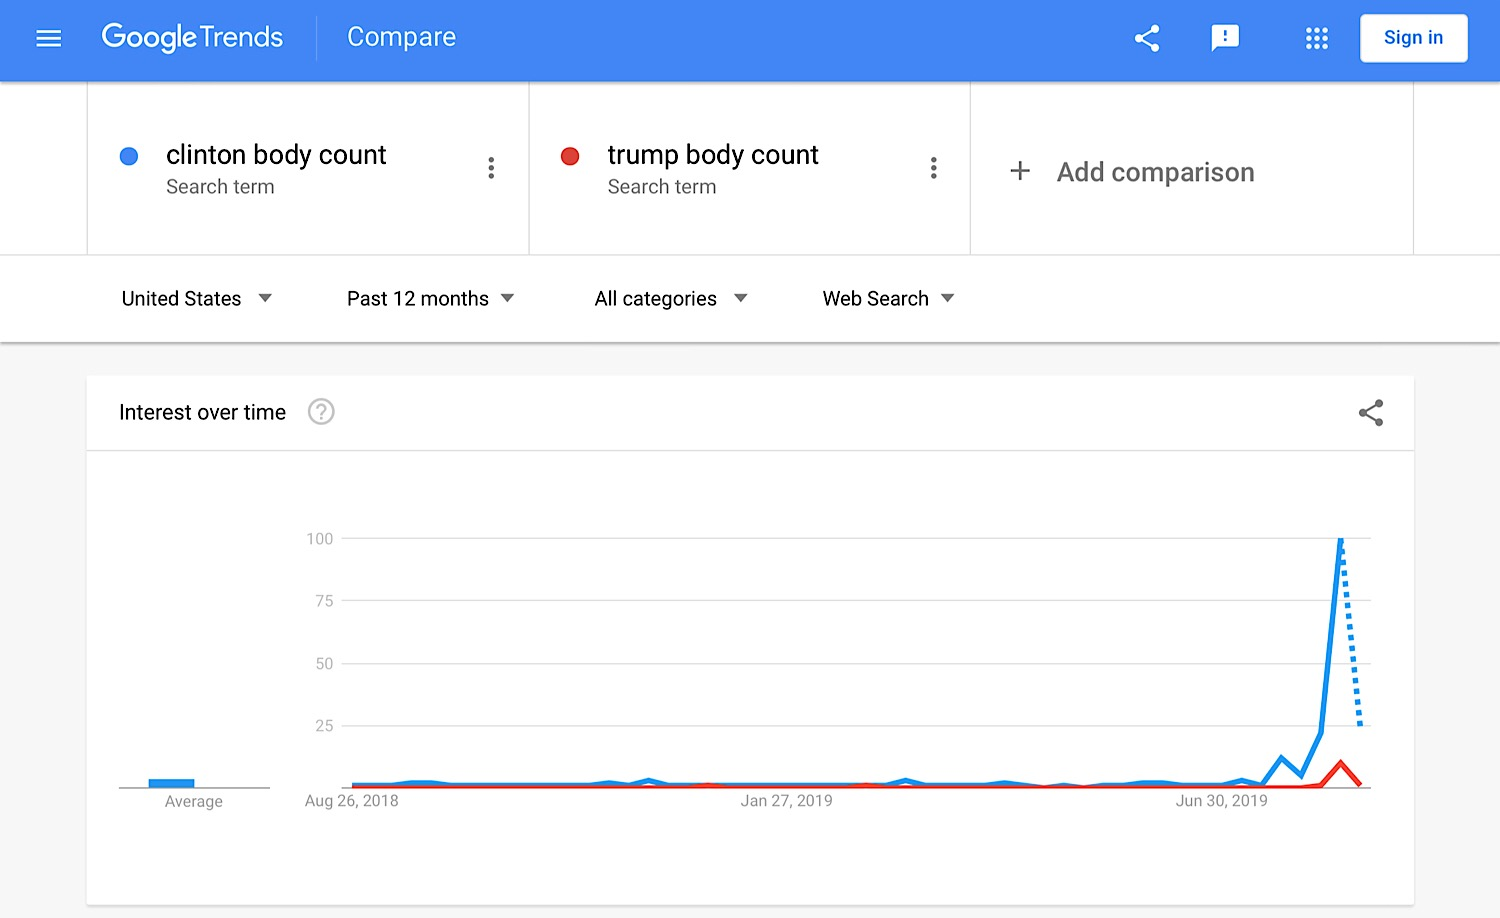 """A comparison of searches for """"Clinton body count"""" and """"Trump body count"""" over the last 12 months."""